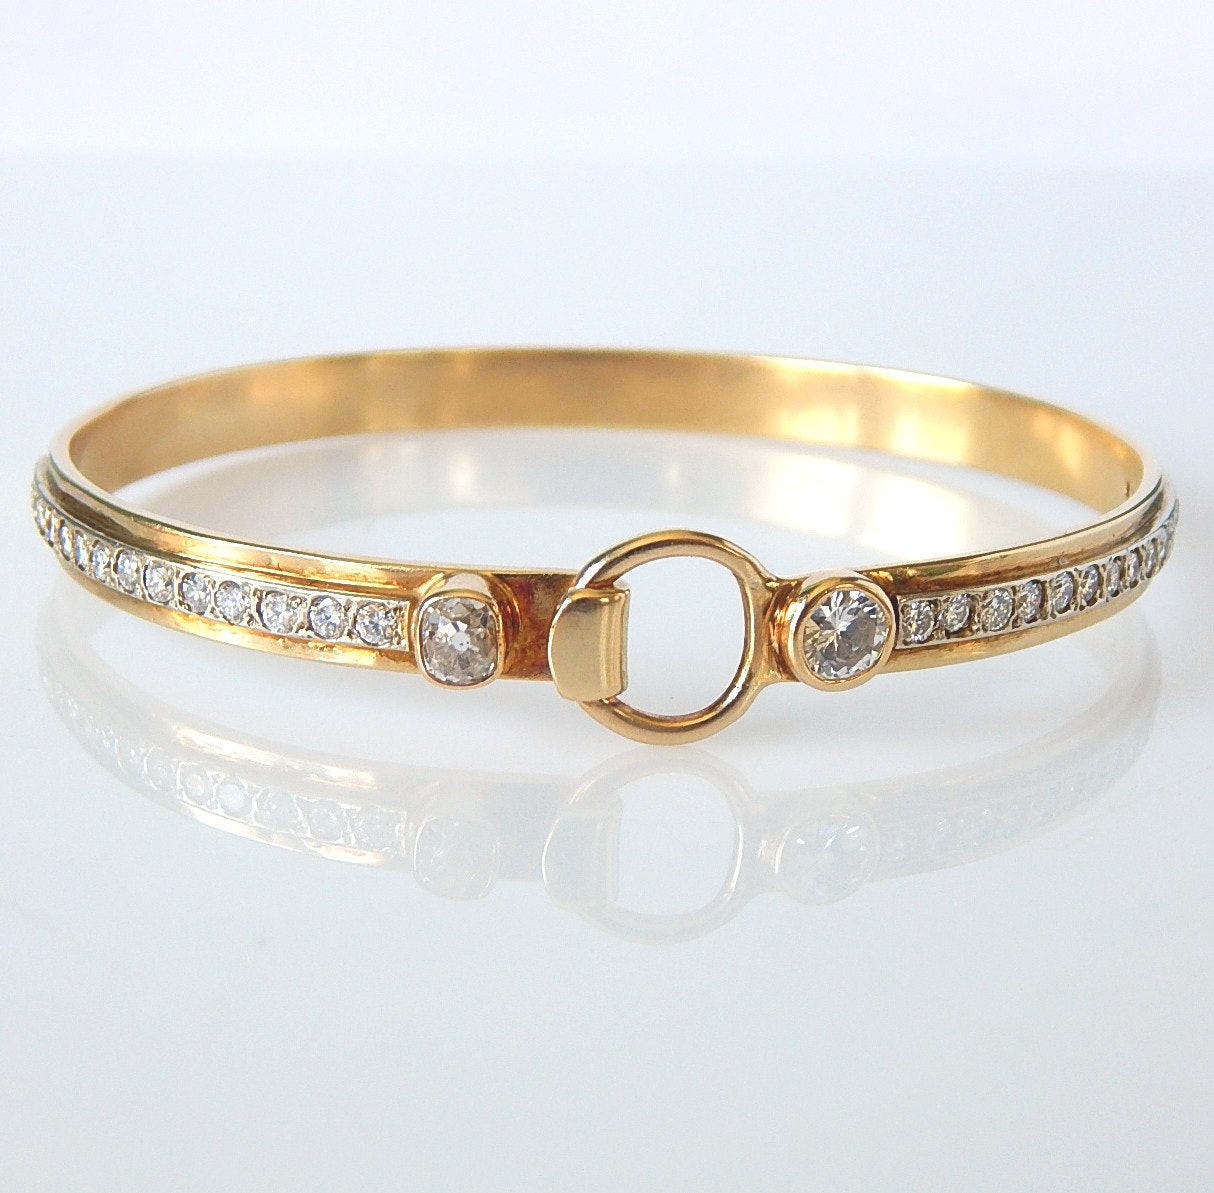 14K Yellow Gold 2.30 CTW Diamond Stirrup Bangle Bracelet